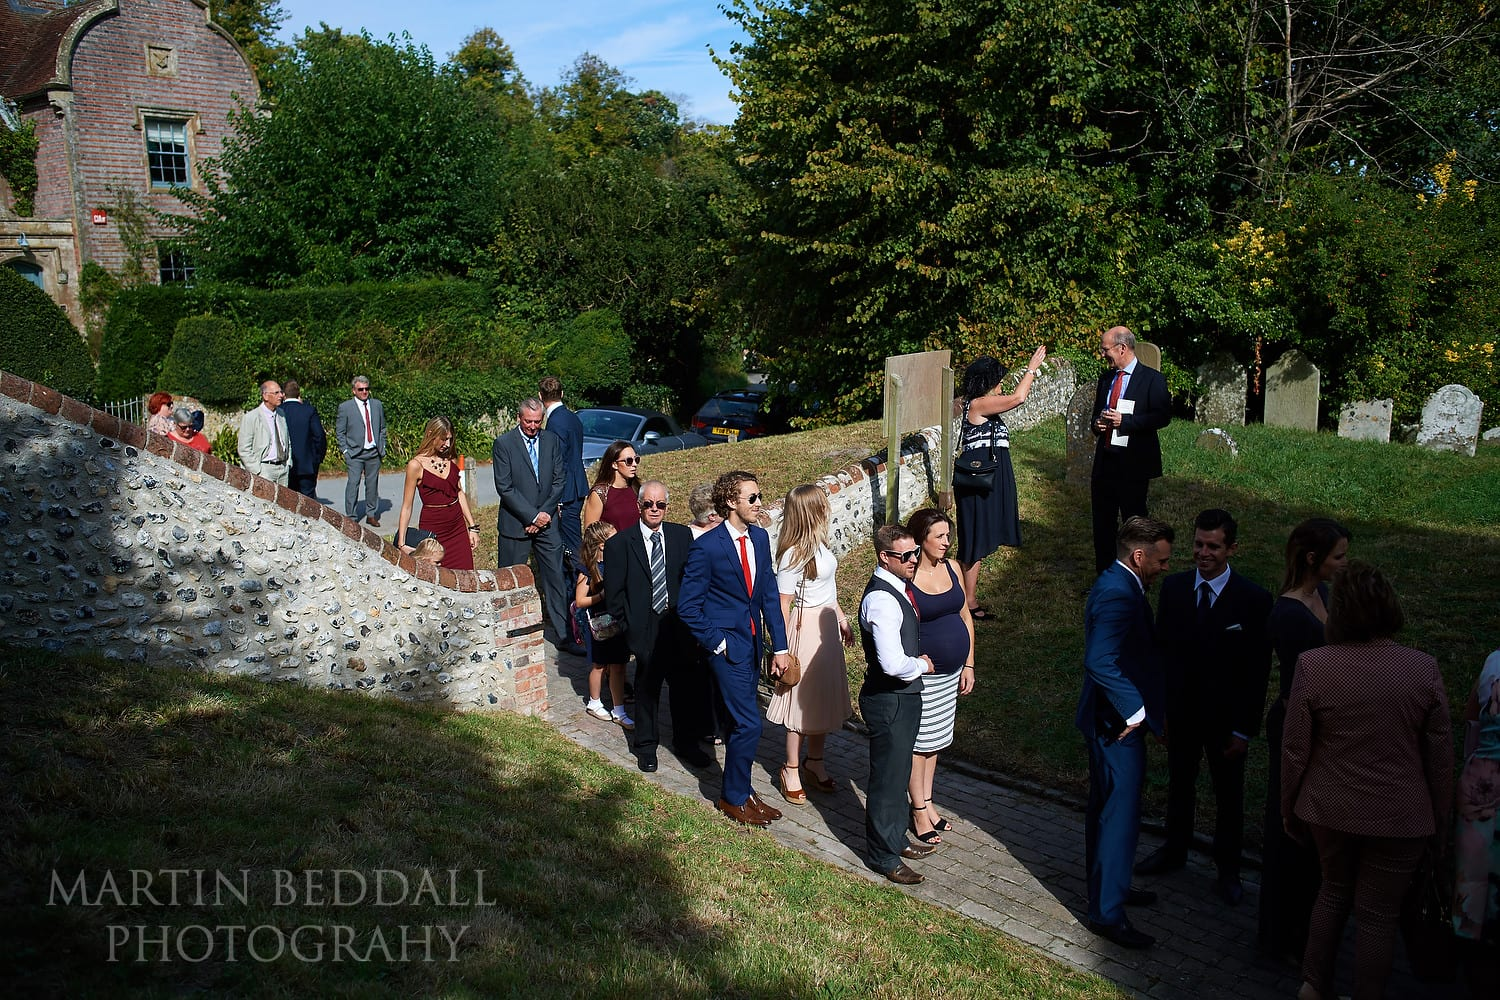 Wedding guests queue to enter the small Church of St Peter ad Vincula at Folkington